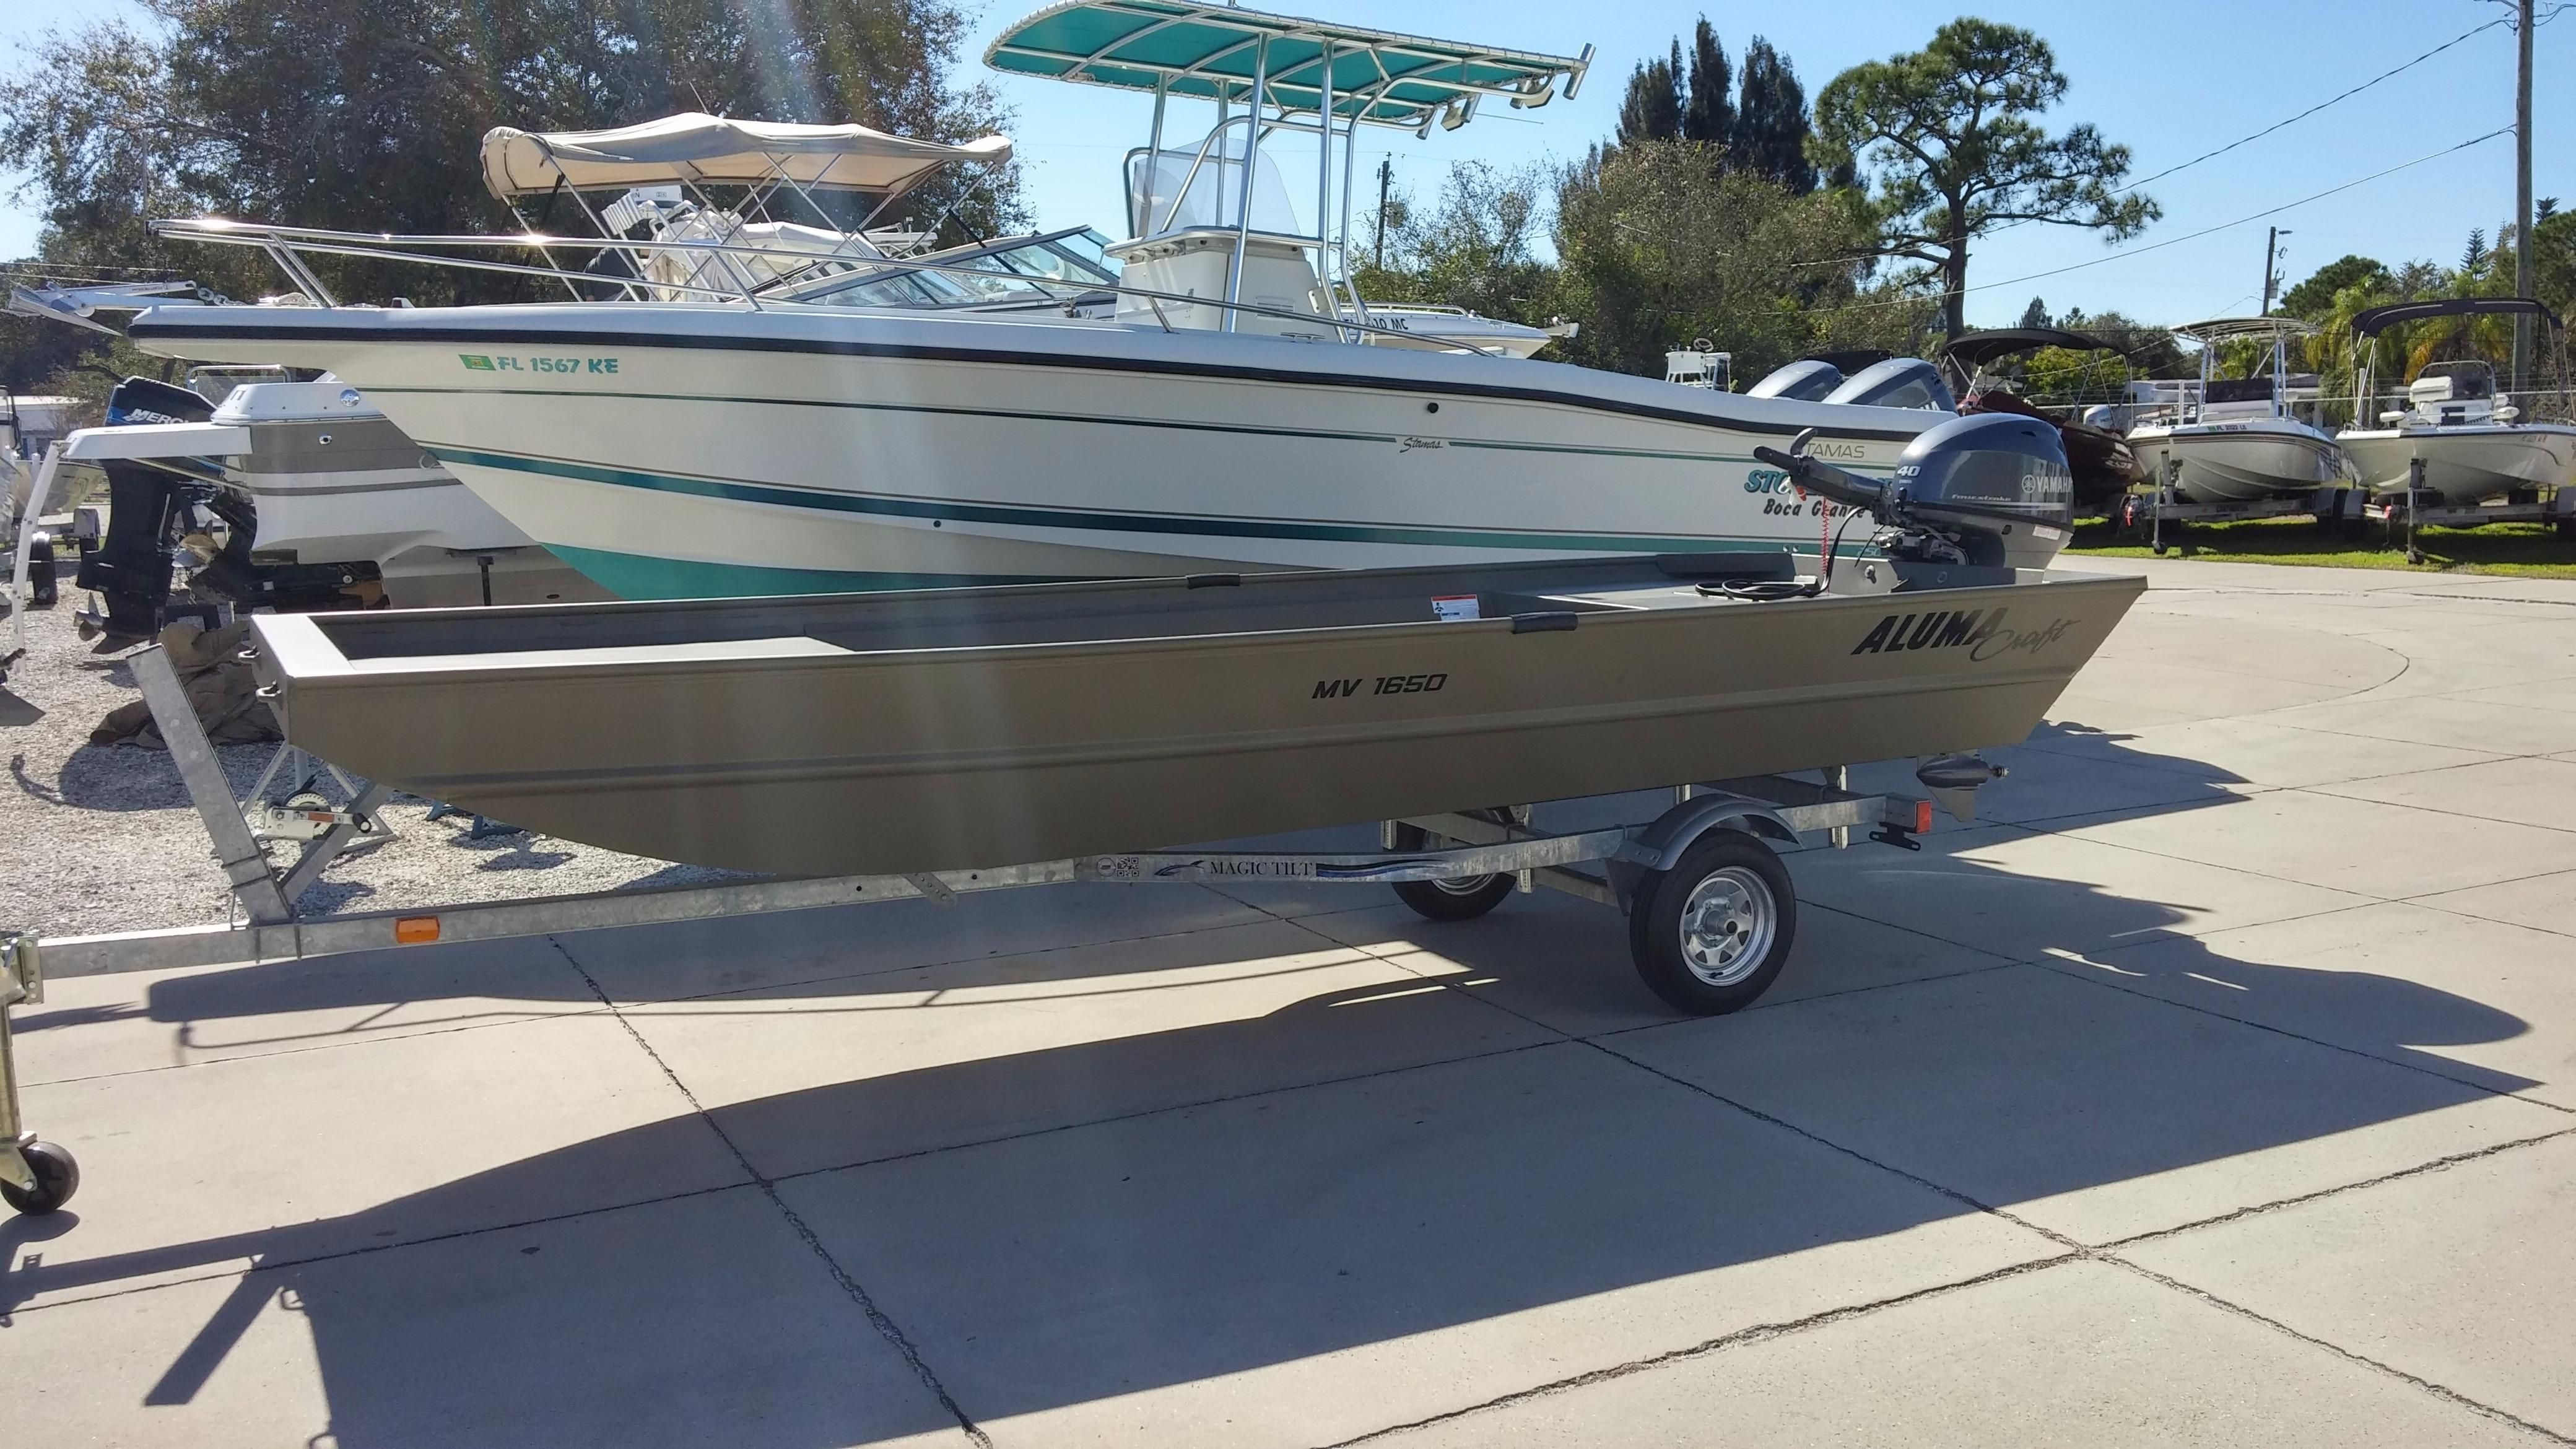 2016 alumacraft 1650 faw package power boat for sale www Aluminum boat and motor packages